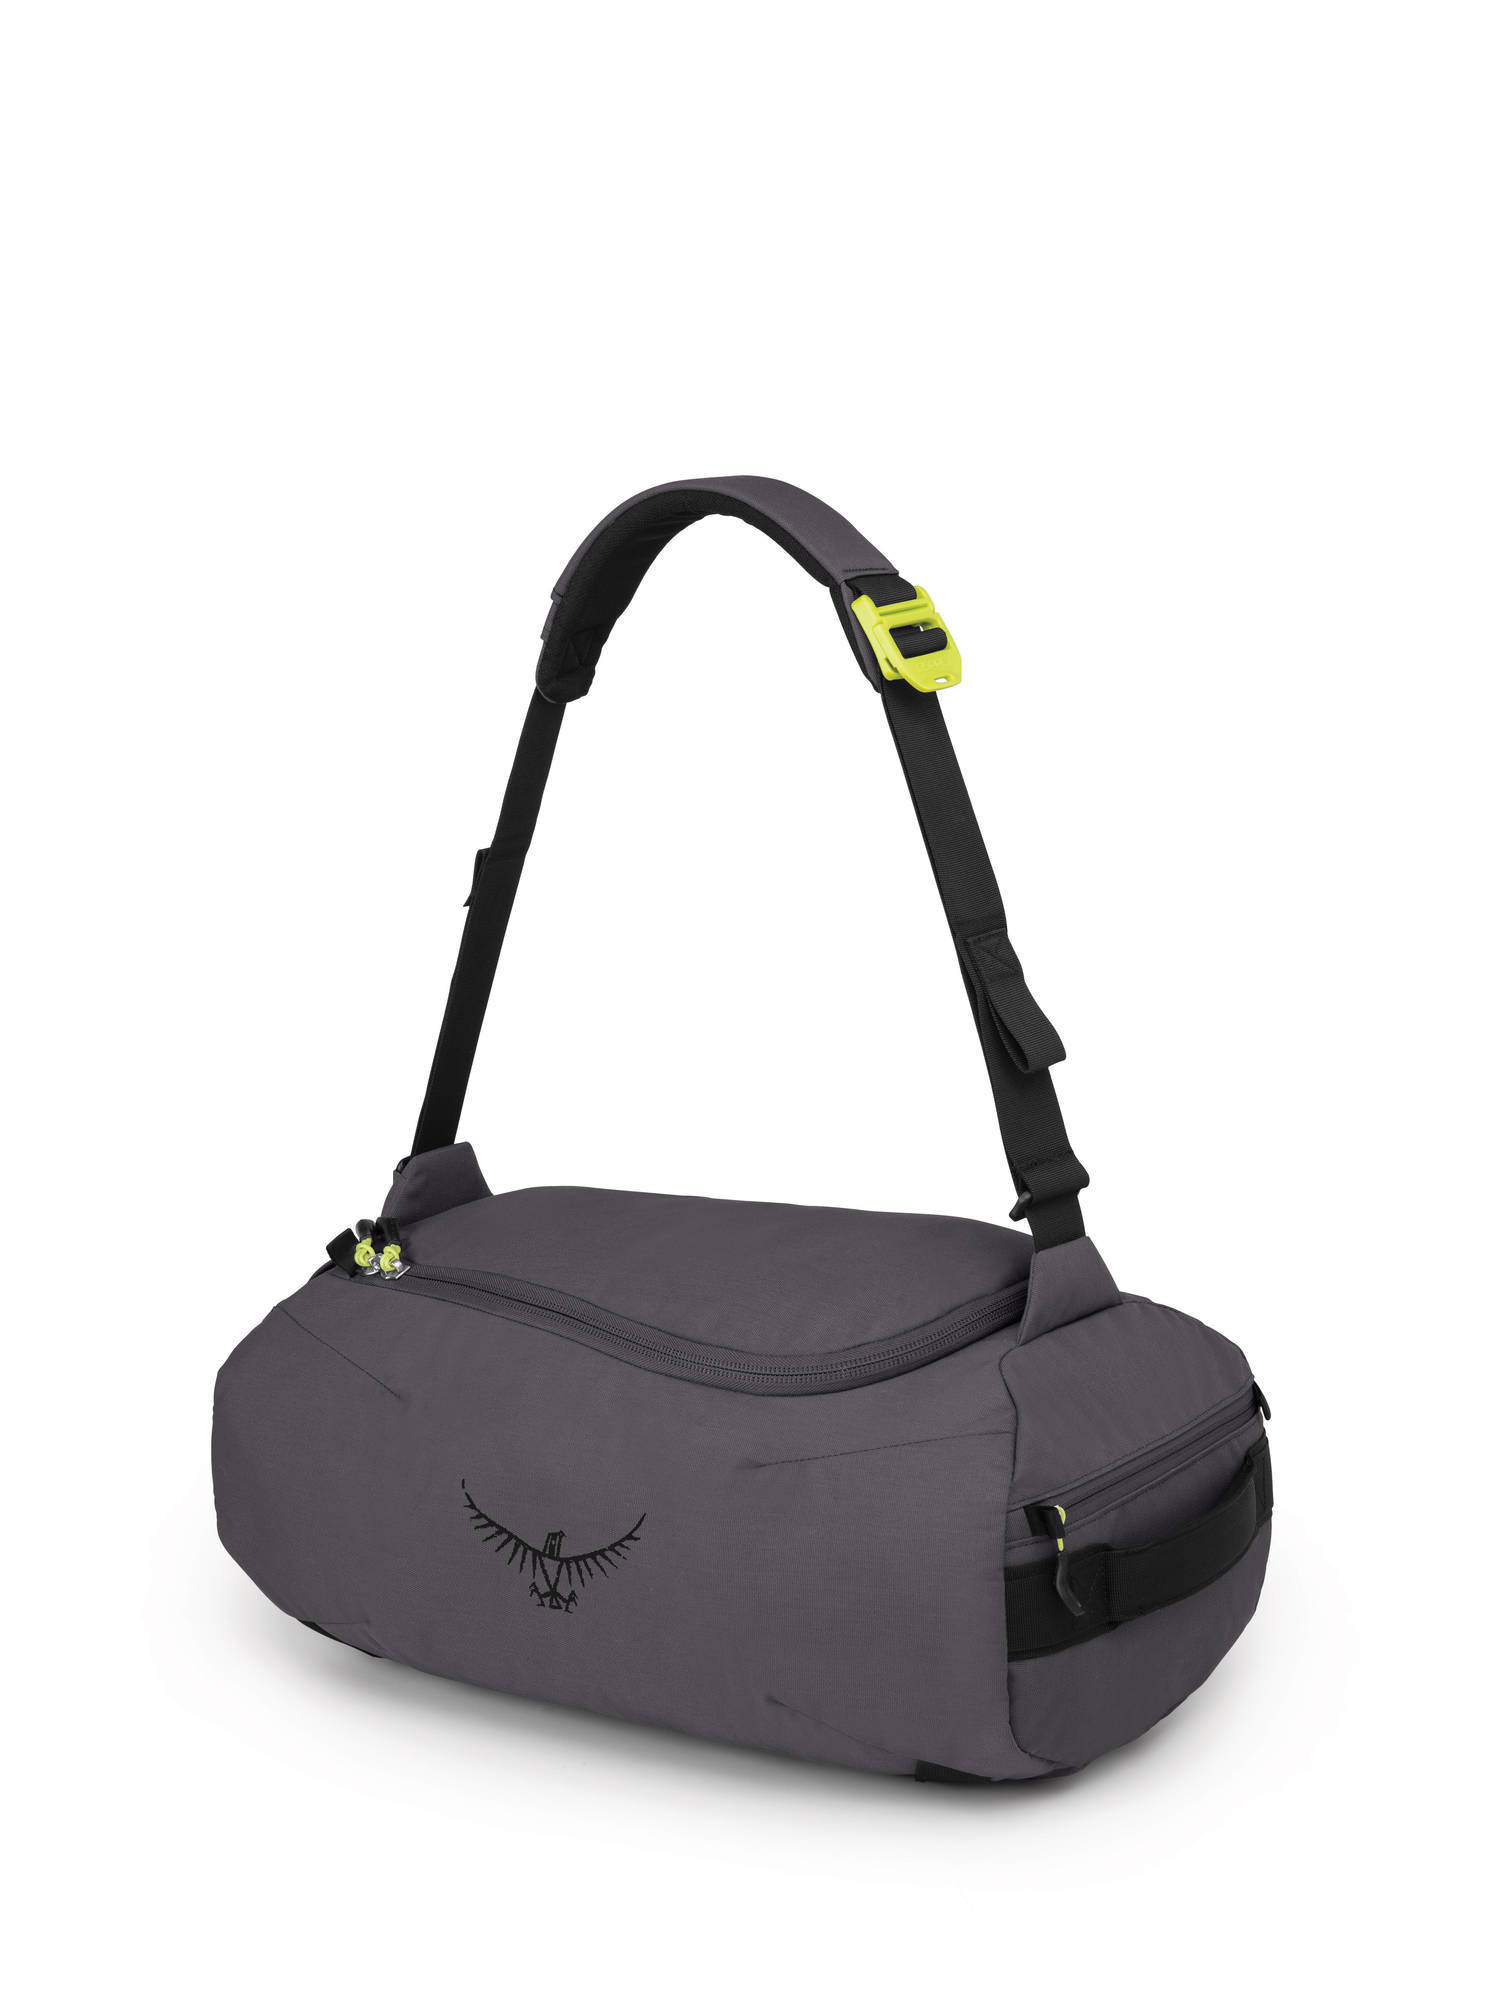 Аксессуары Сумка Osprey Trillium 45 Duffel Granite Grey Trillium_45_F17_Side_Granite_Grey_web.jpg